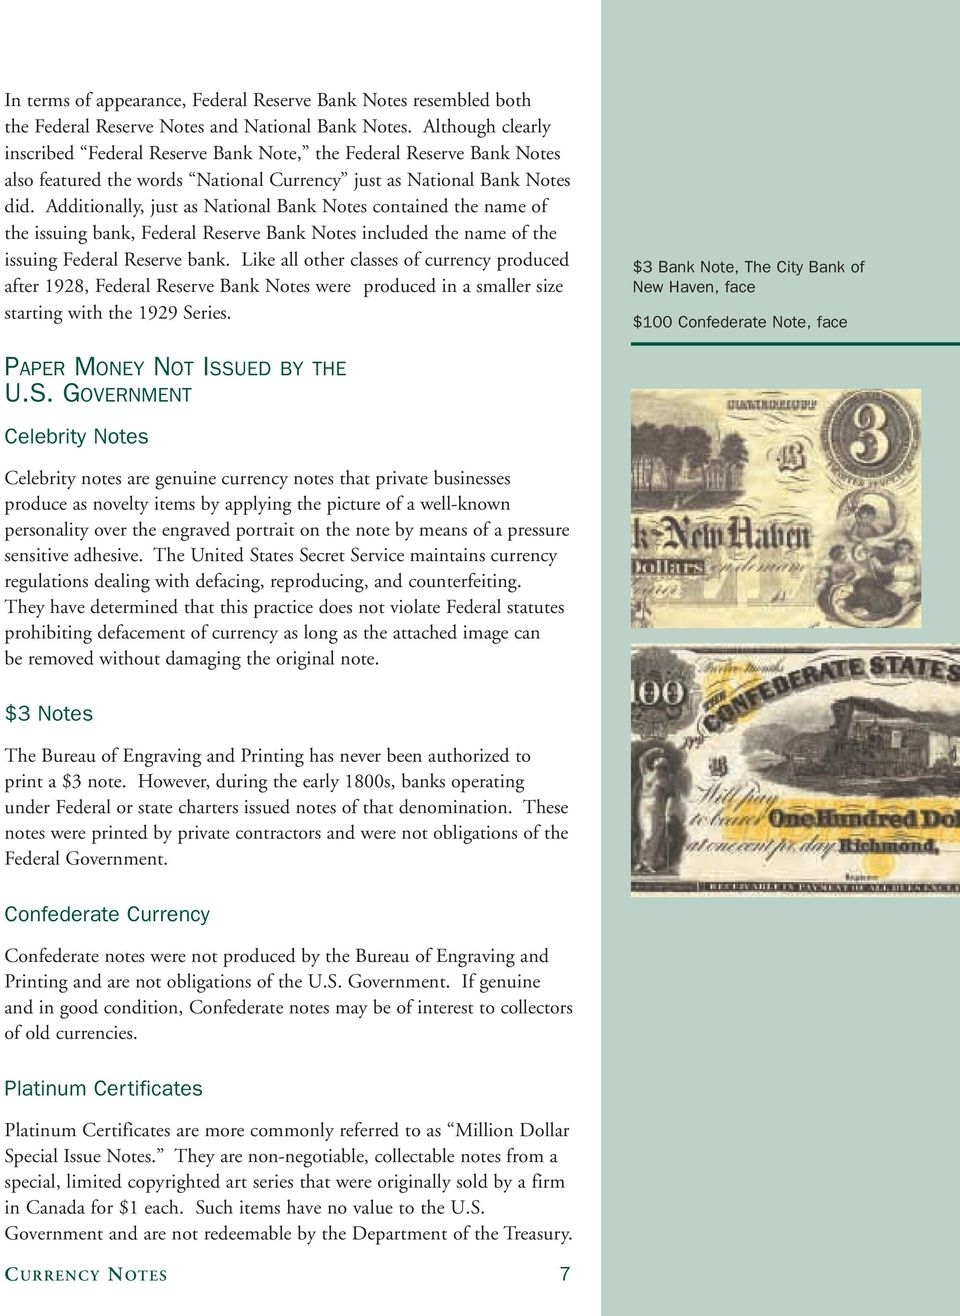 Additionally, just as National Bank Notes contained the name of the issuing bank, Federal Reserve Bank Notes included the name of the issuing Federal Reserve bank.